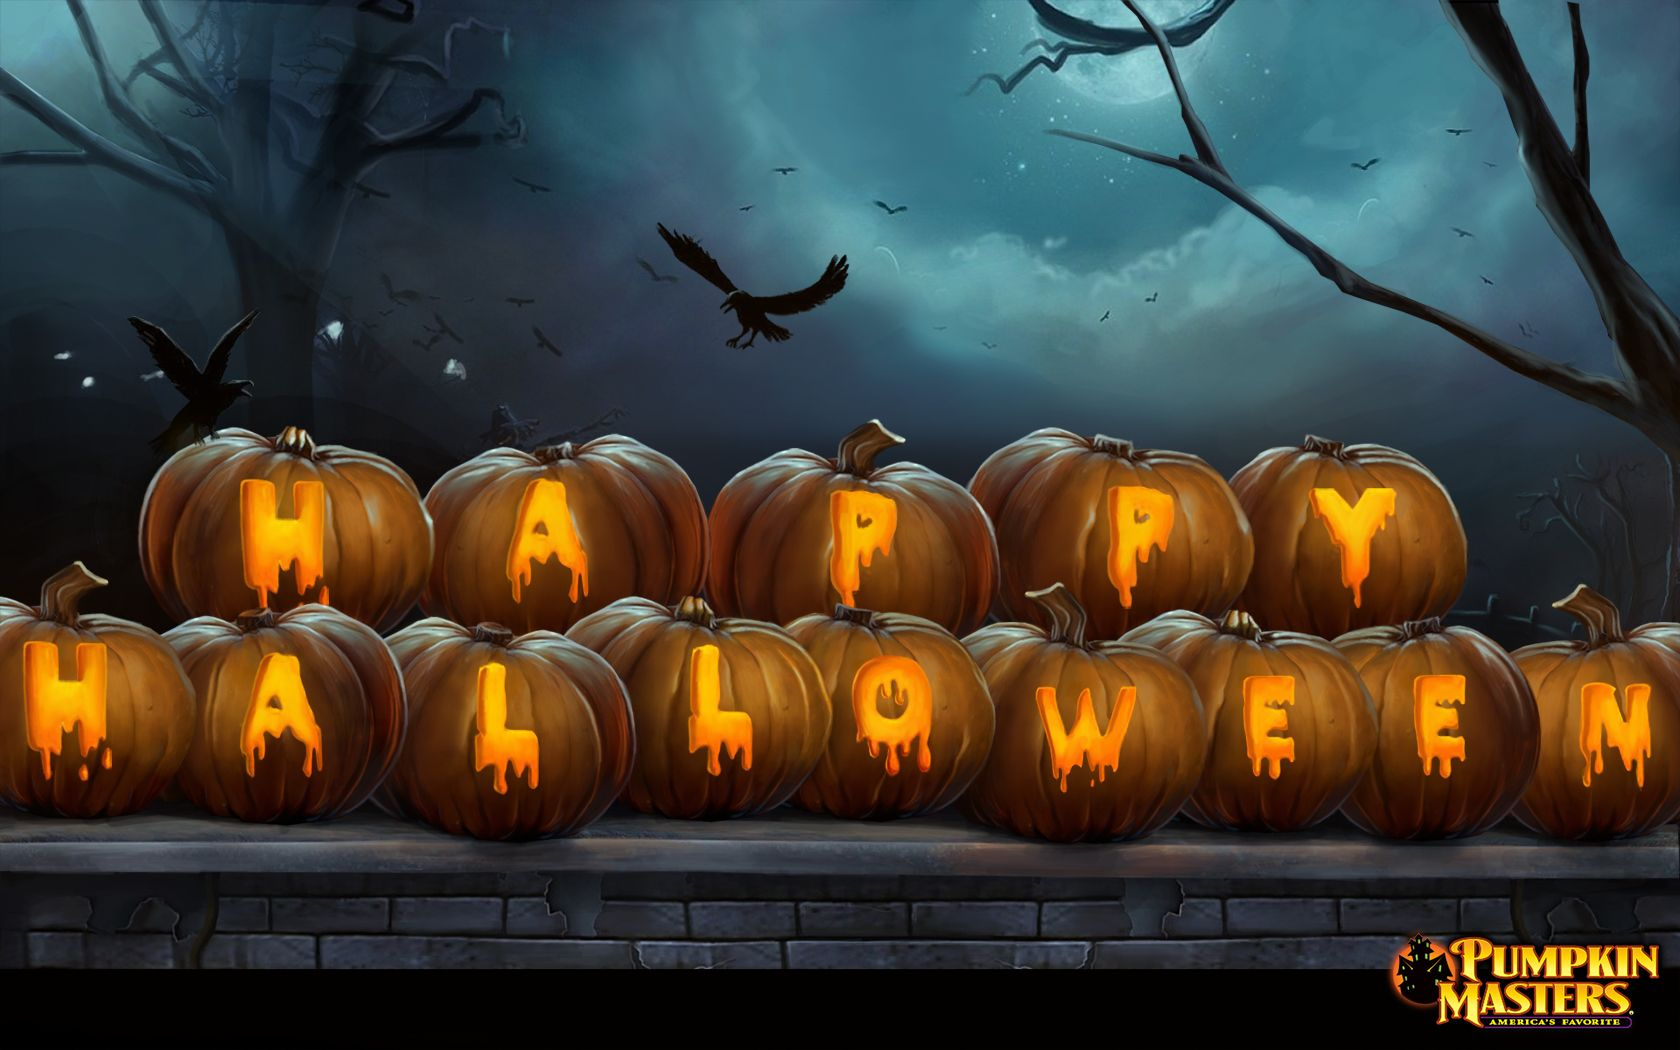 Most Inspiring Wallpaper Halloween Screensaver - 92034092355102424ee20753f56e21a1  Collection_501382.jpg